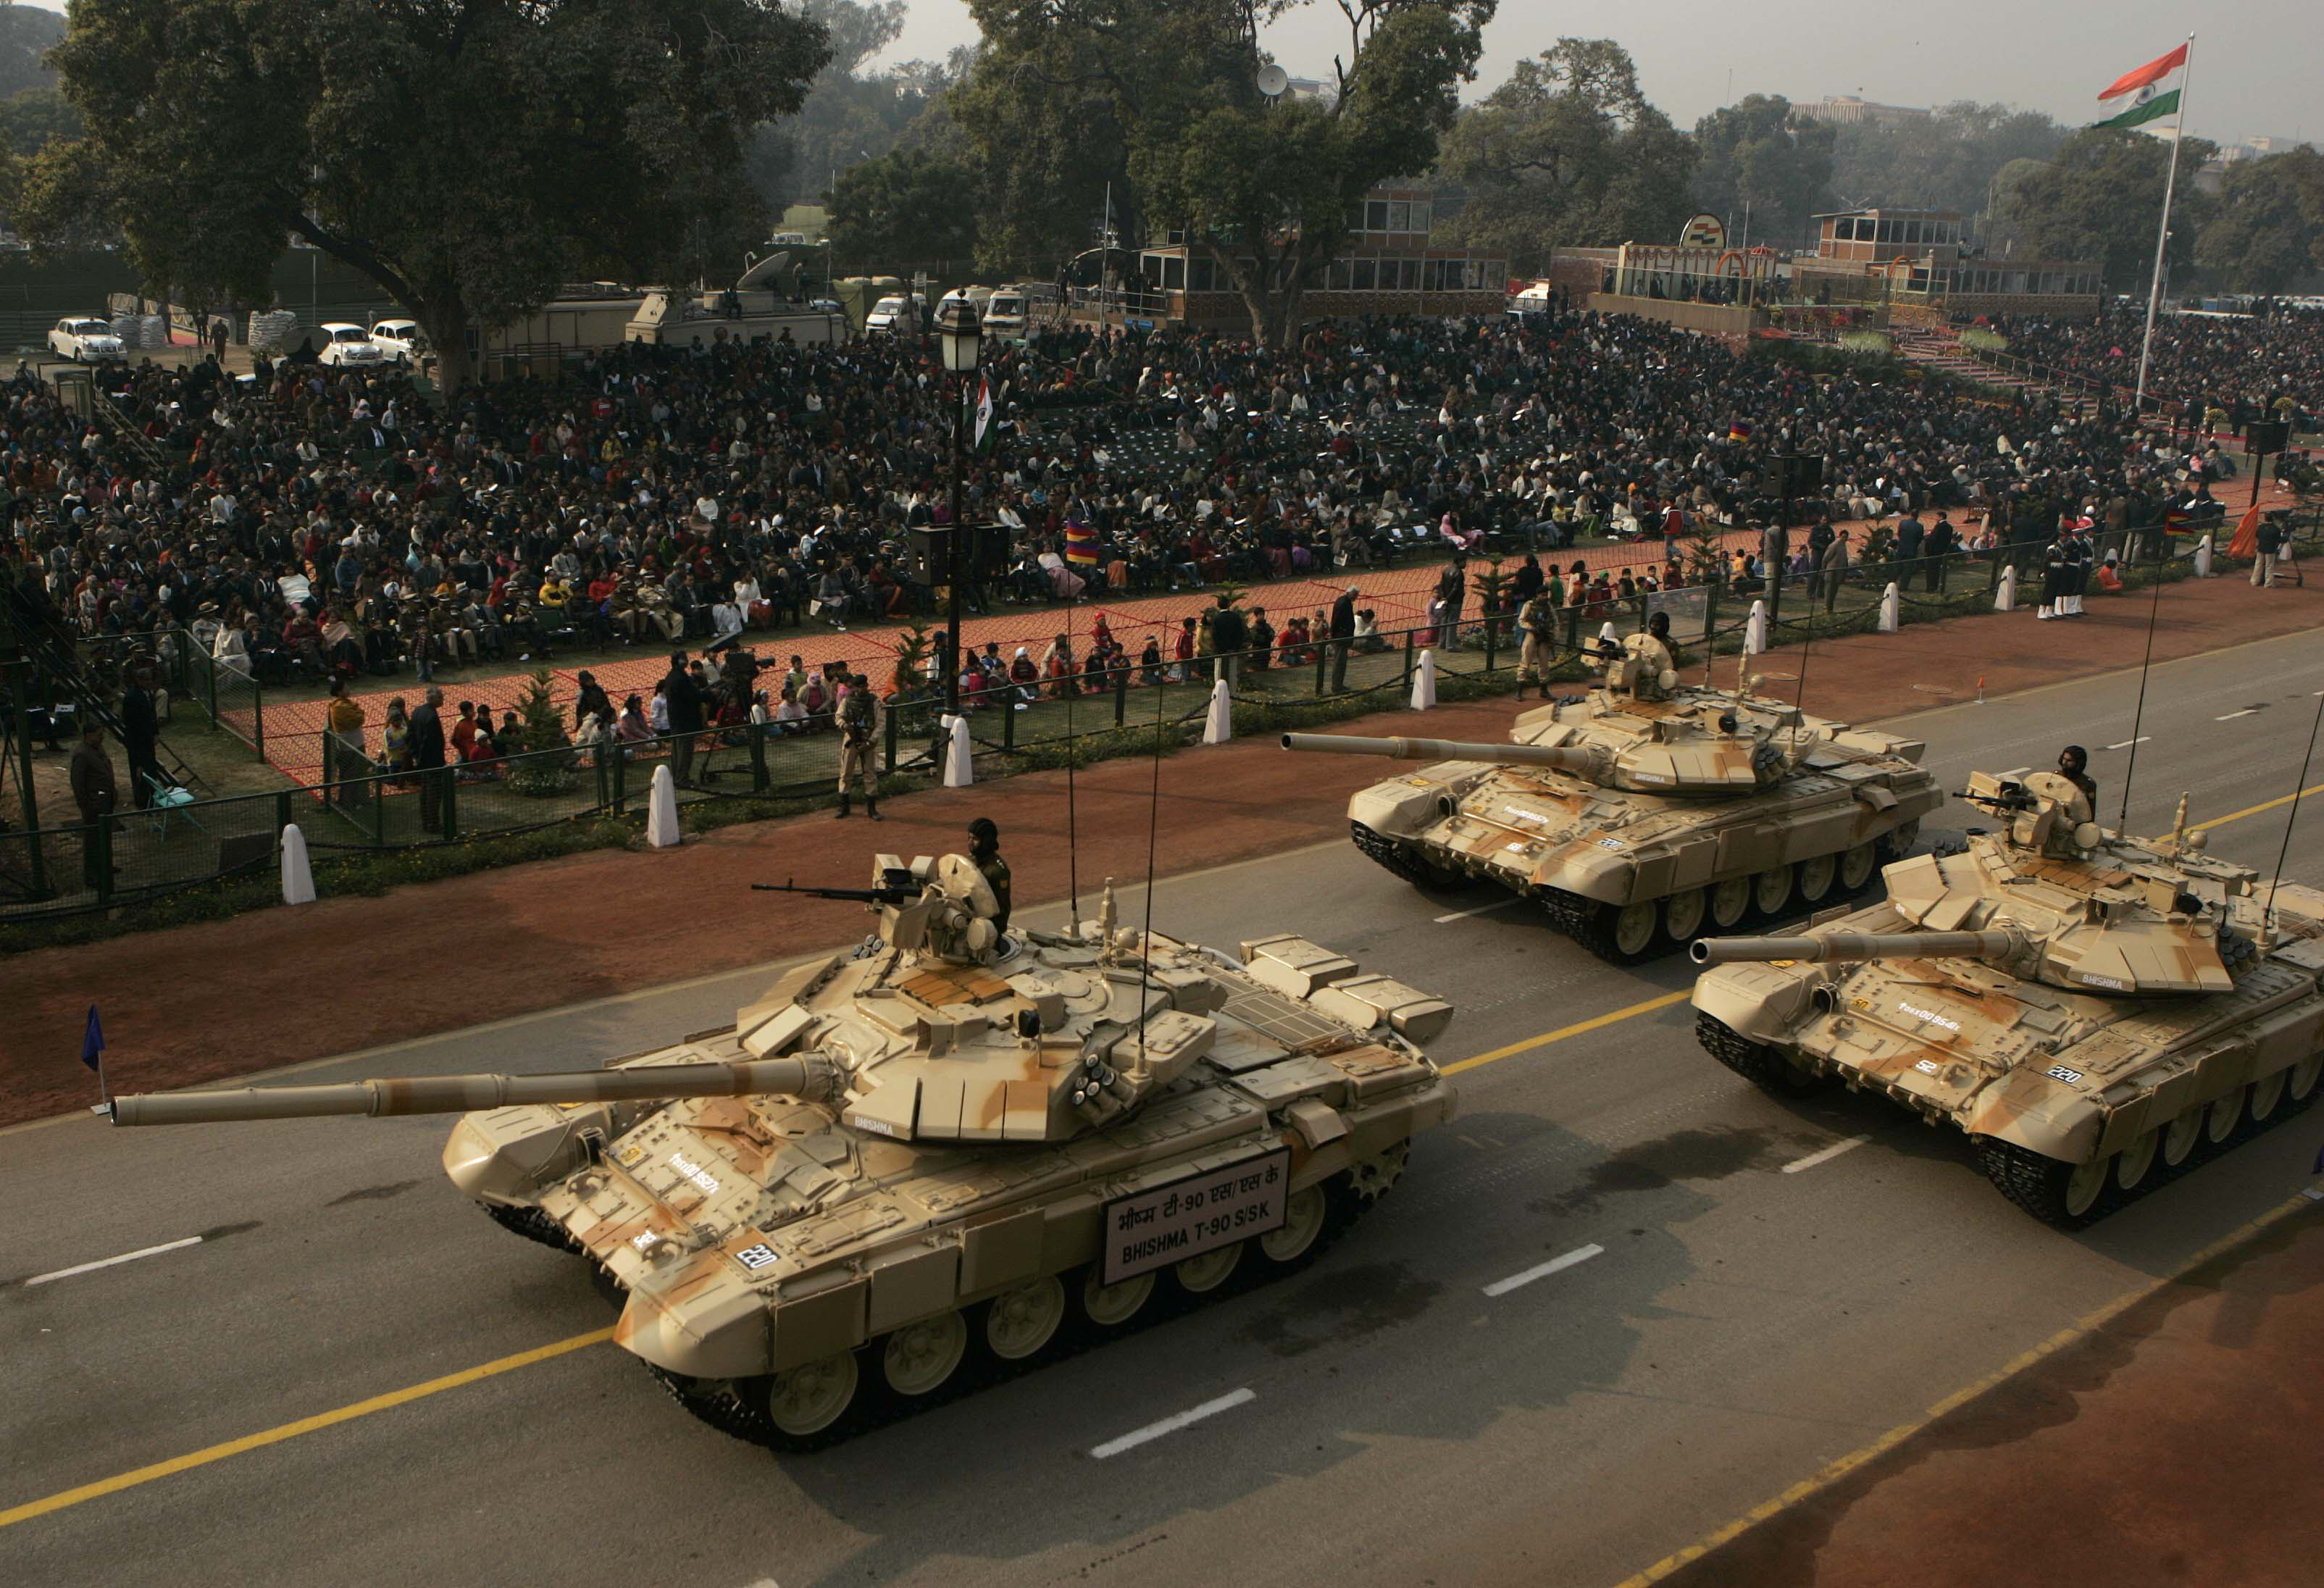 According to the existing contracts and the new agreement, India will receive a total of 2,121 T-90 tanks in total.